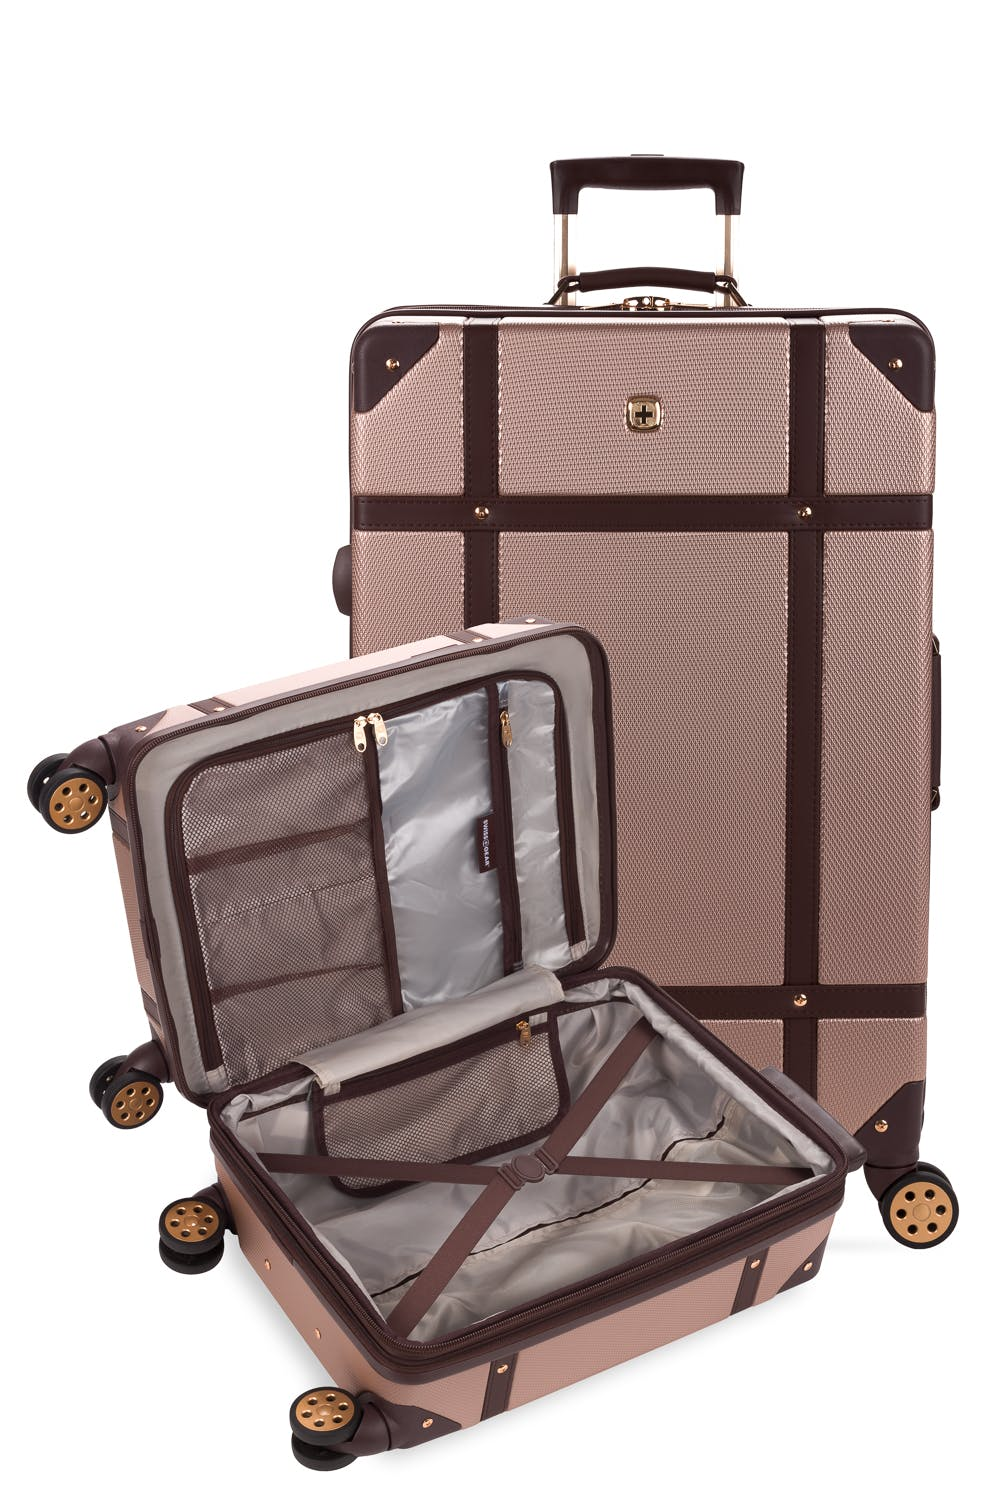 SWISSGEAR 7739 2-piece Expandable Trunk Luggage